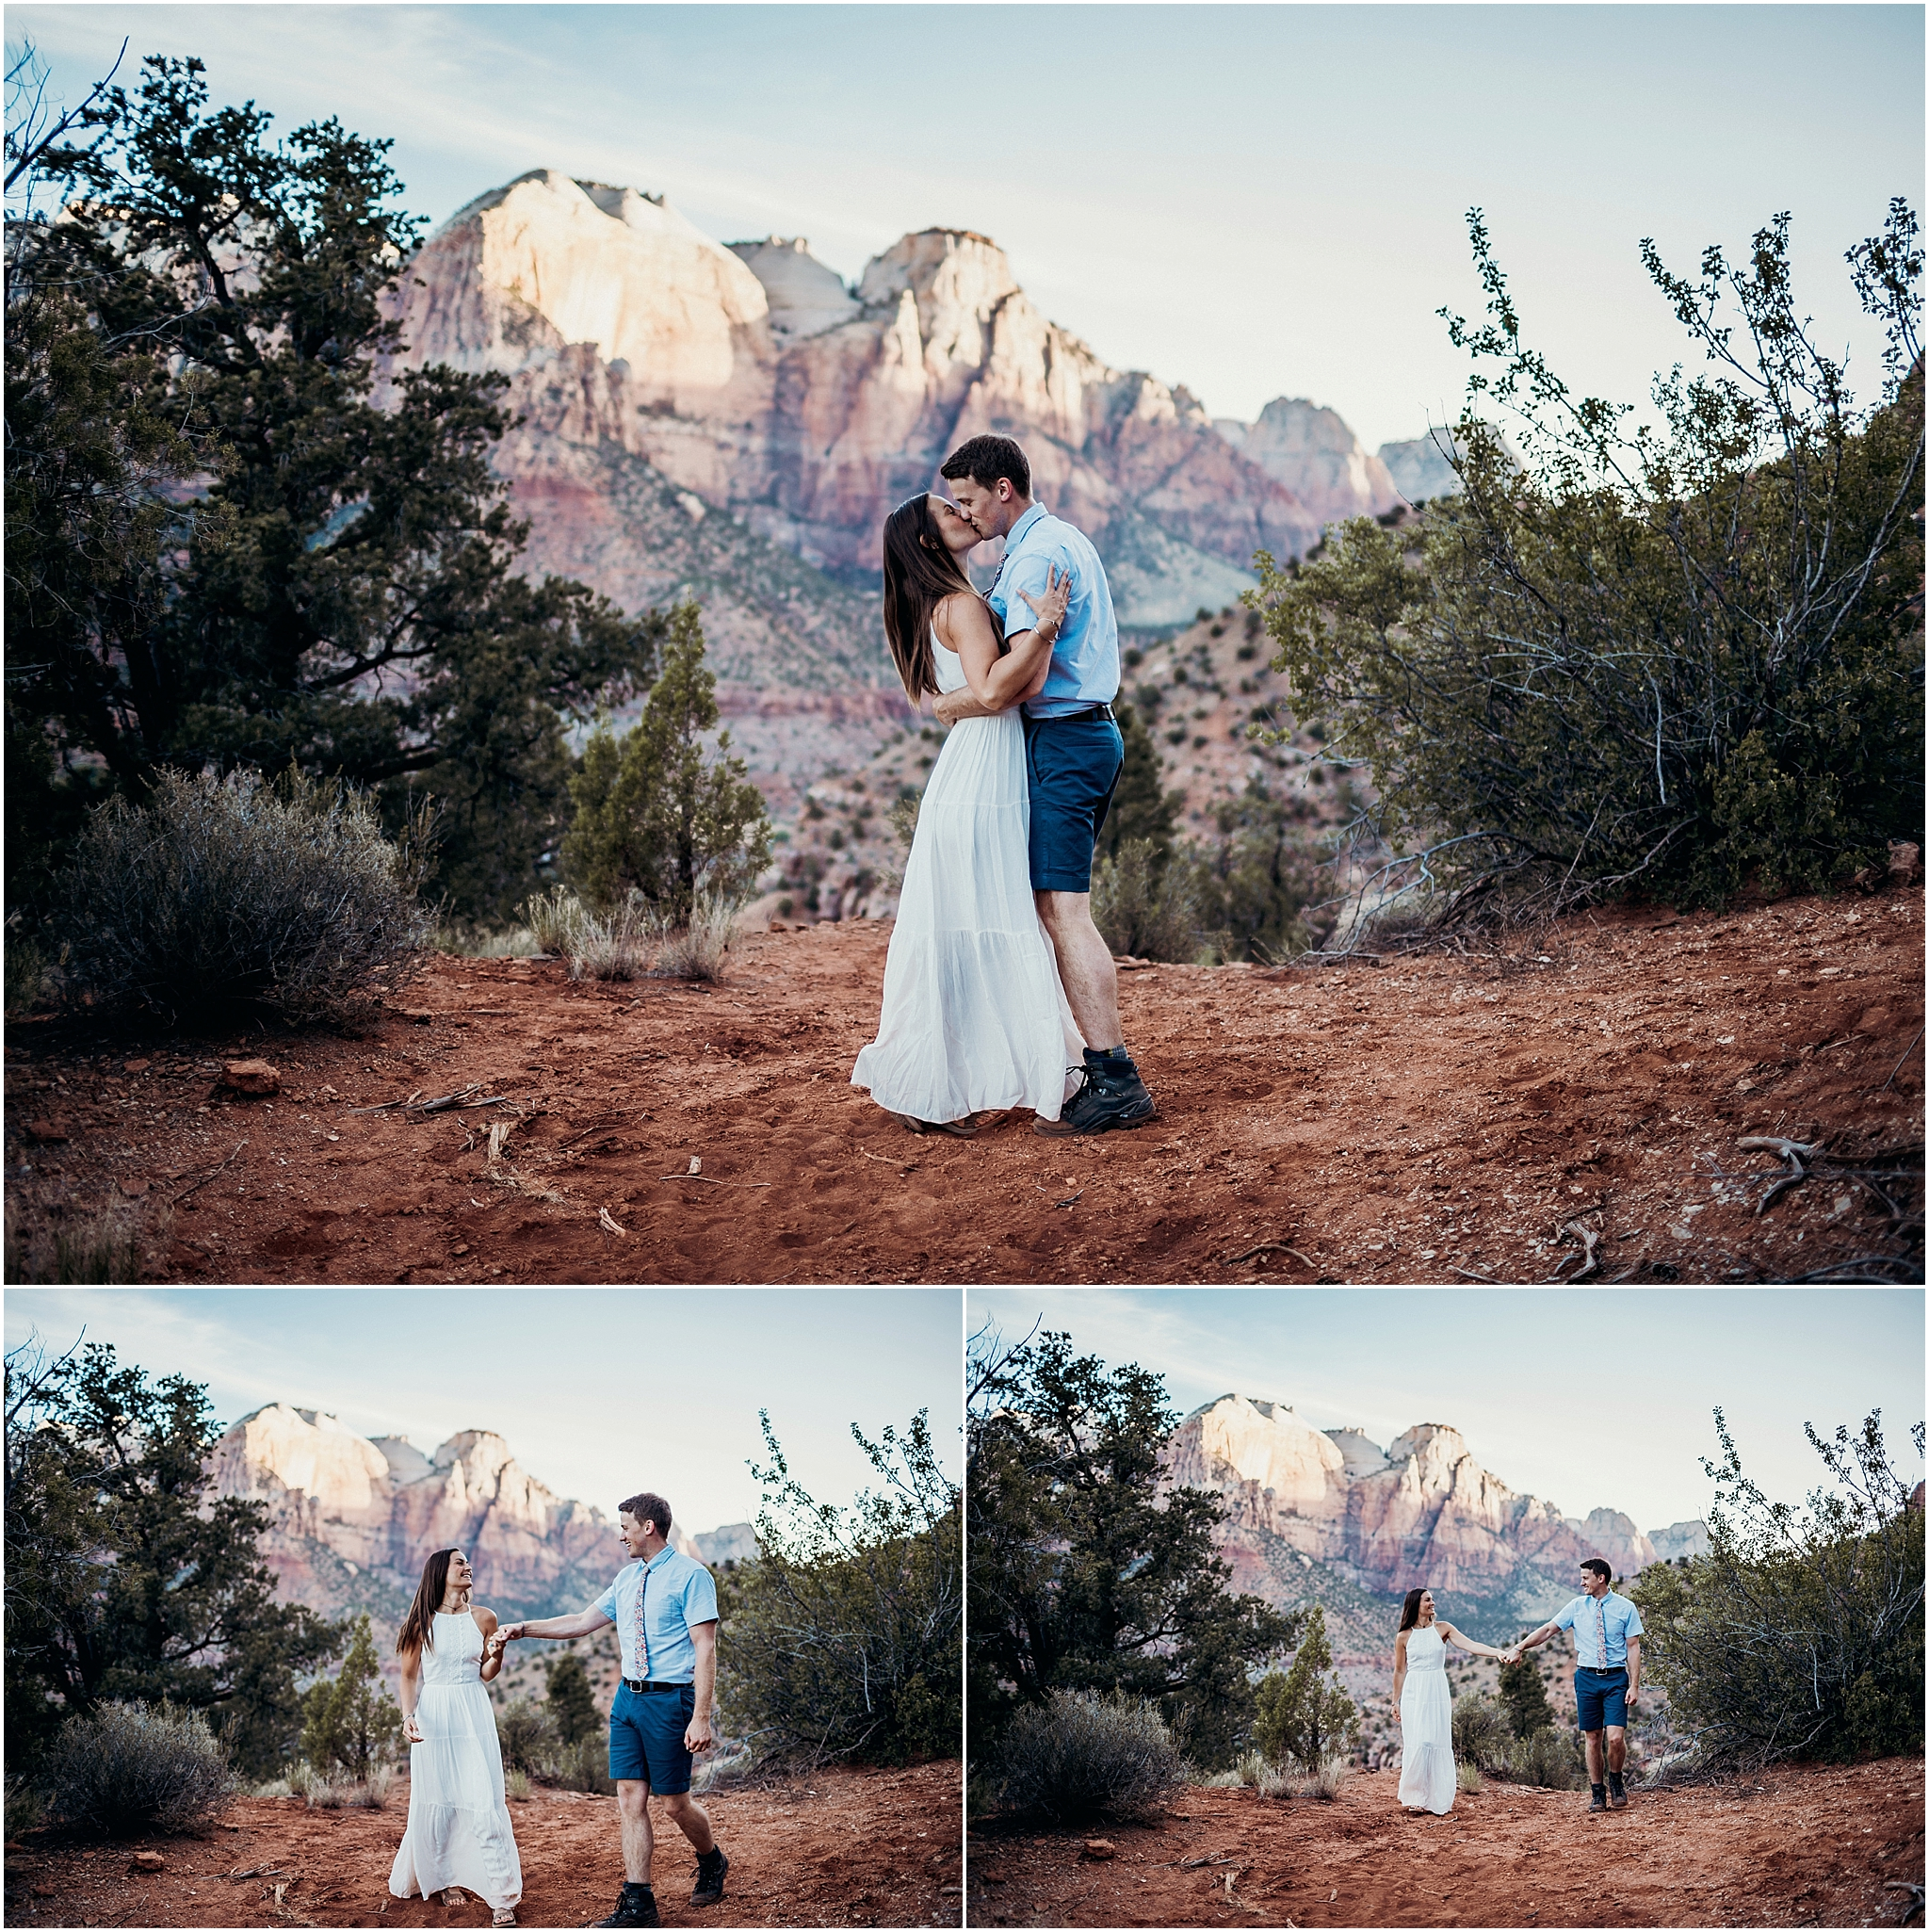 zion national park adventure engagement session zion portraits utah photographer arizona photographer 17.jpg